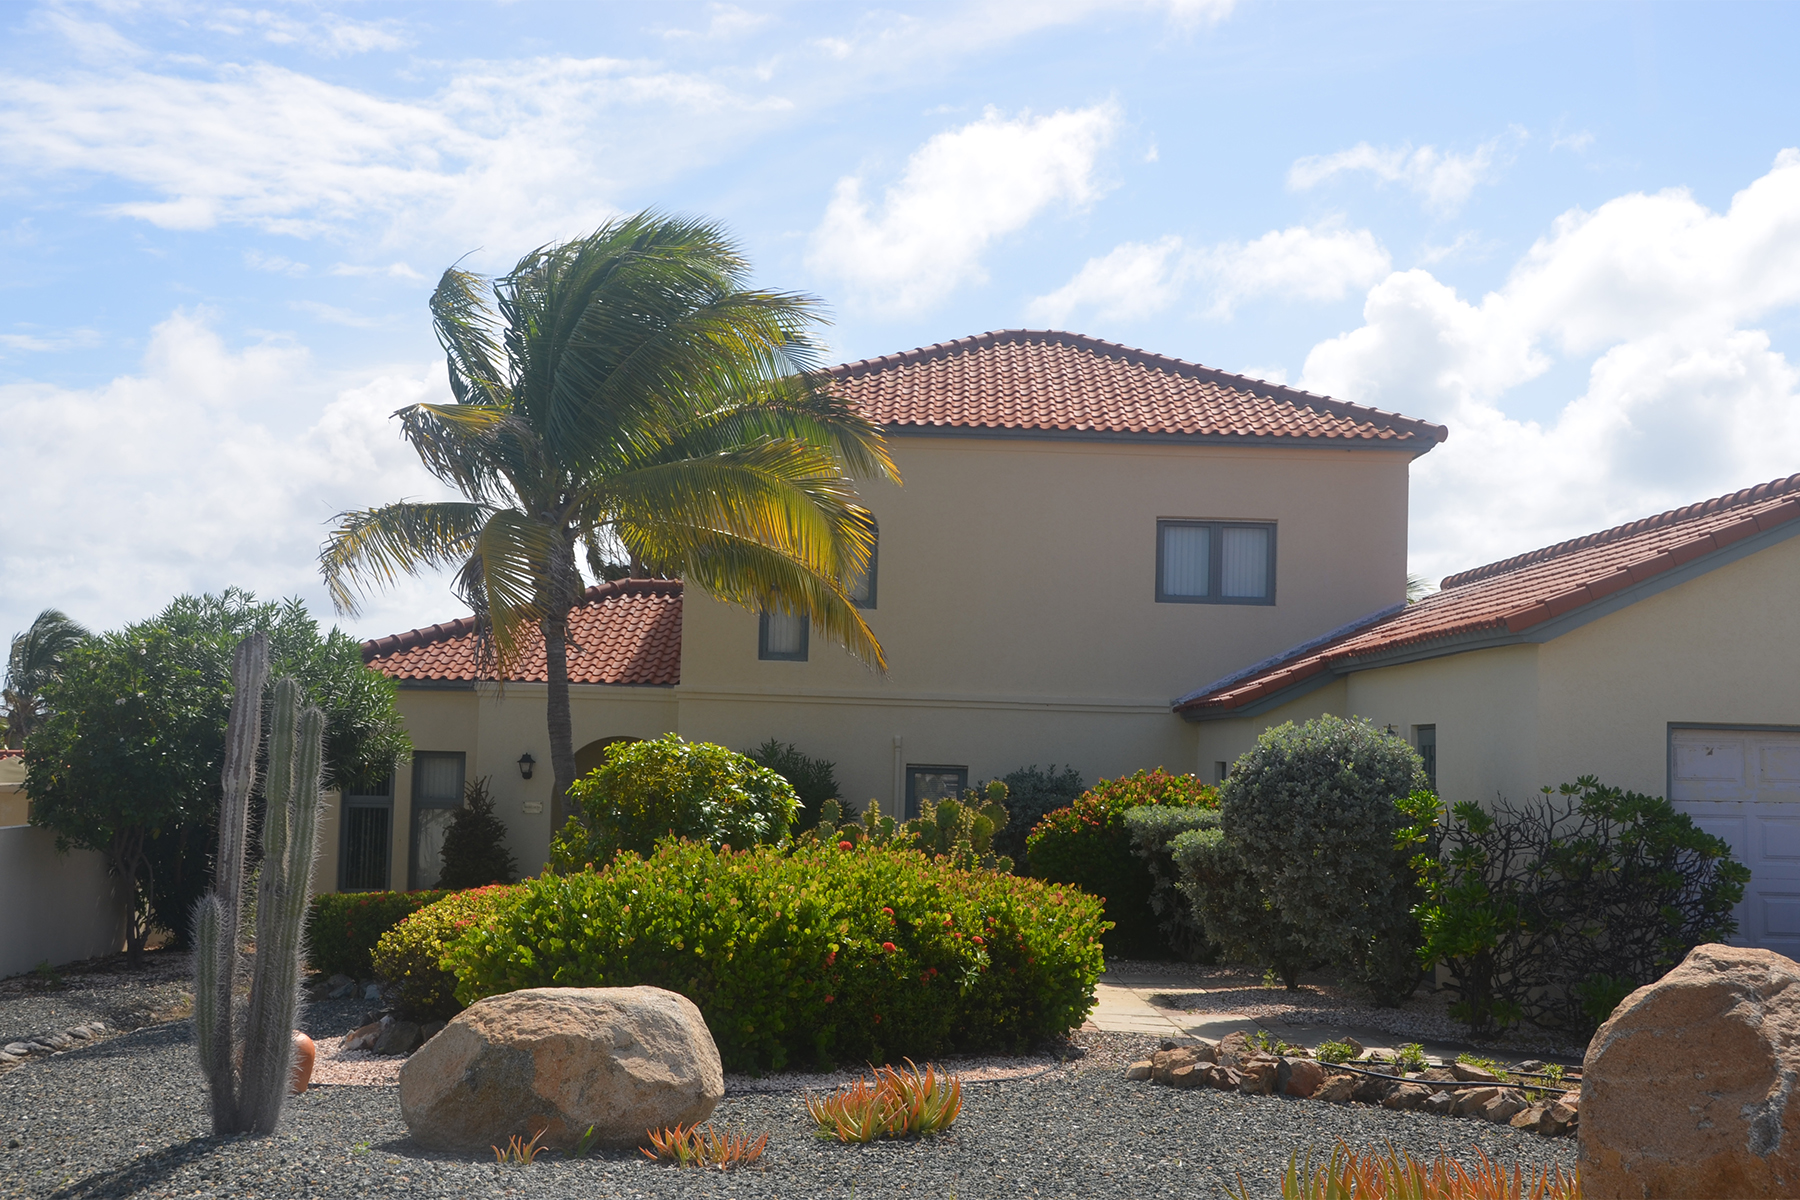 Single Family Home for Sale at MesaVista38 Malmok, Aruba